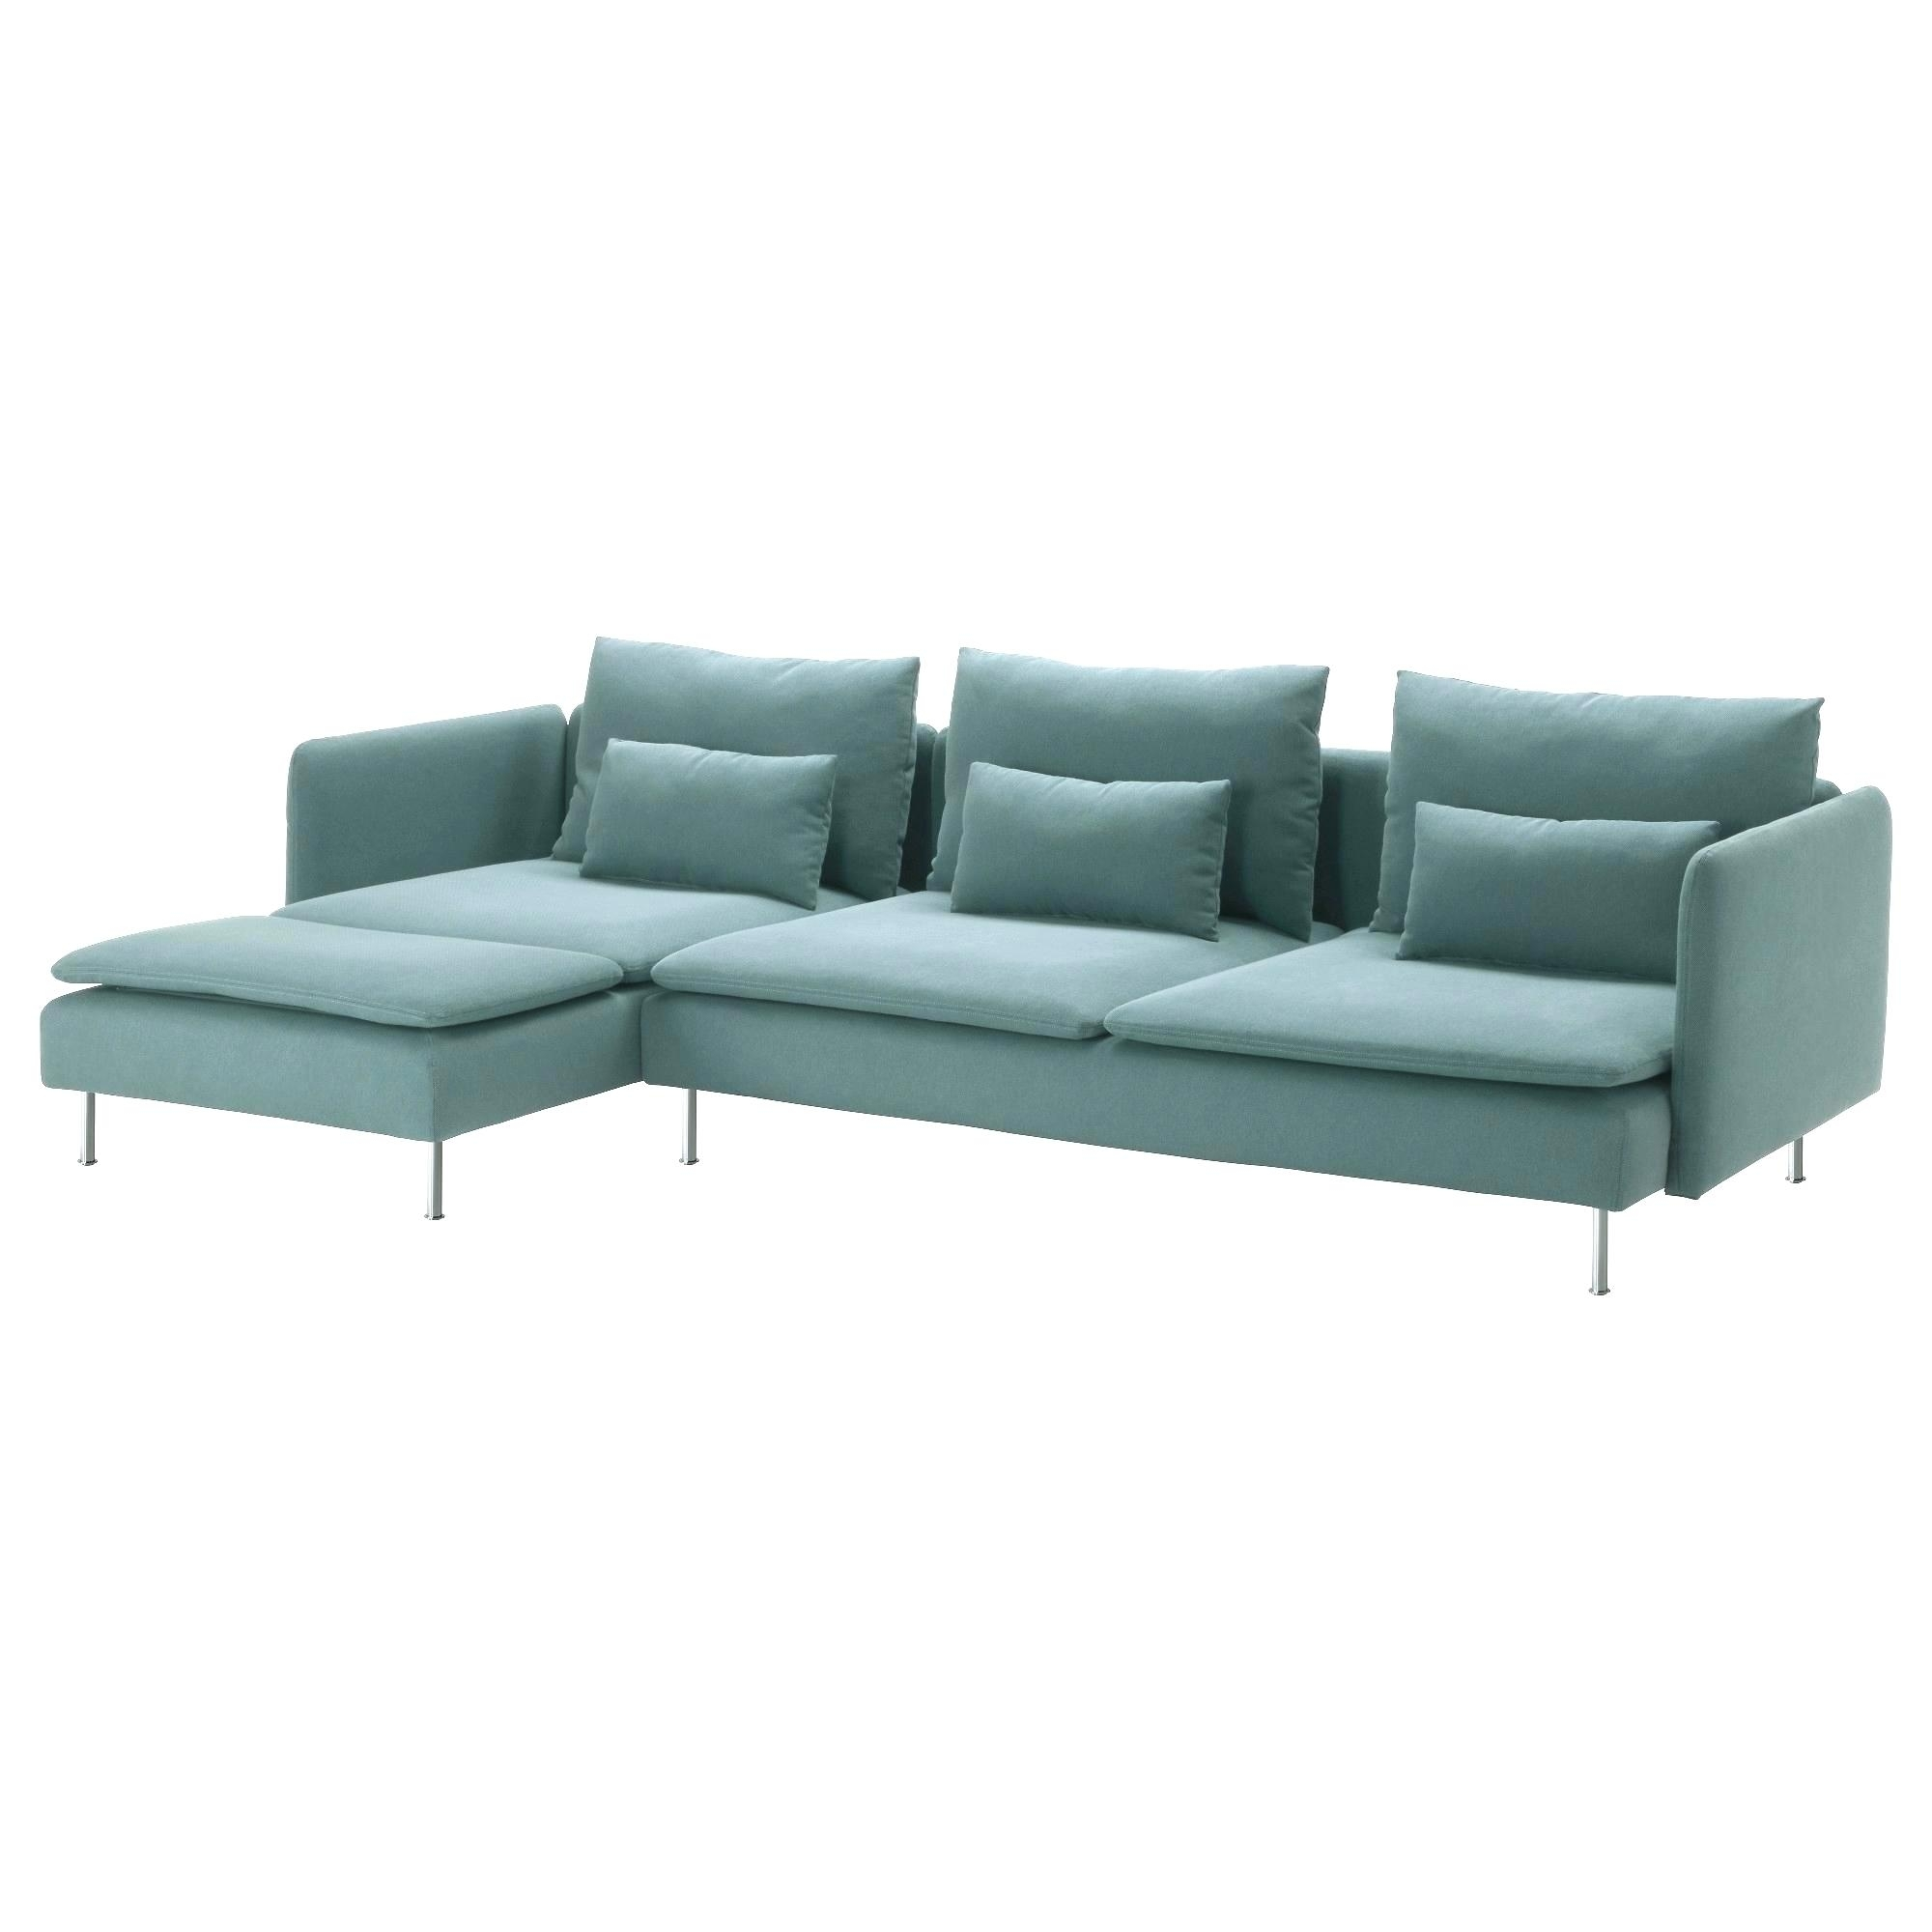 Leather Sofas Canada: 10 The Best Vancouver Bc Canada Sectional Sofas